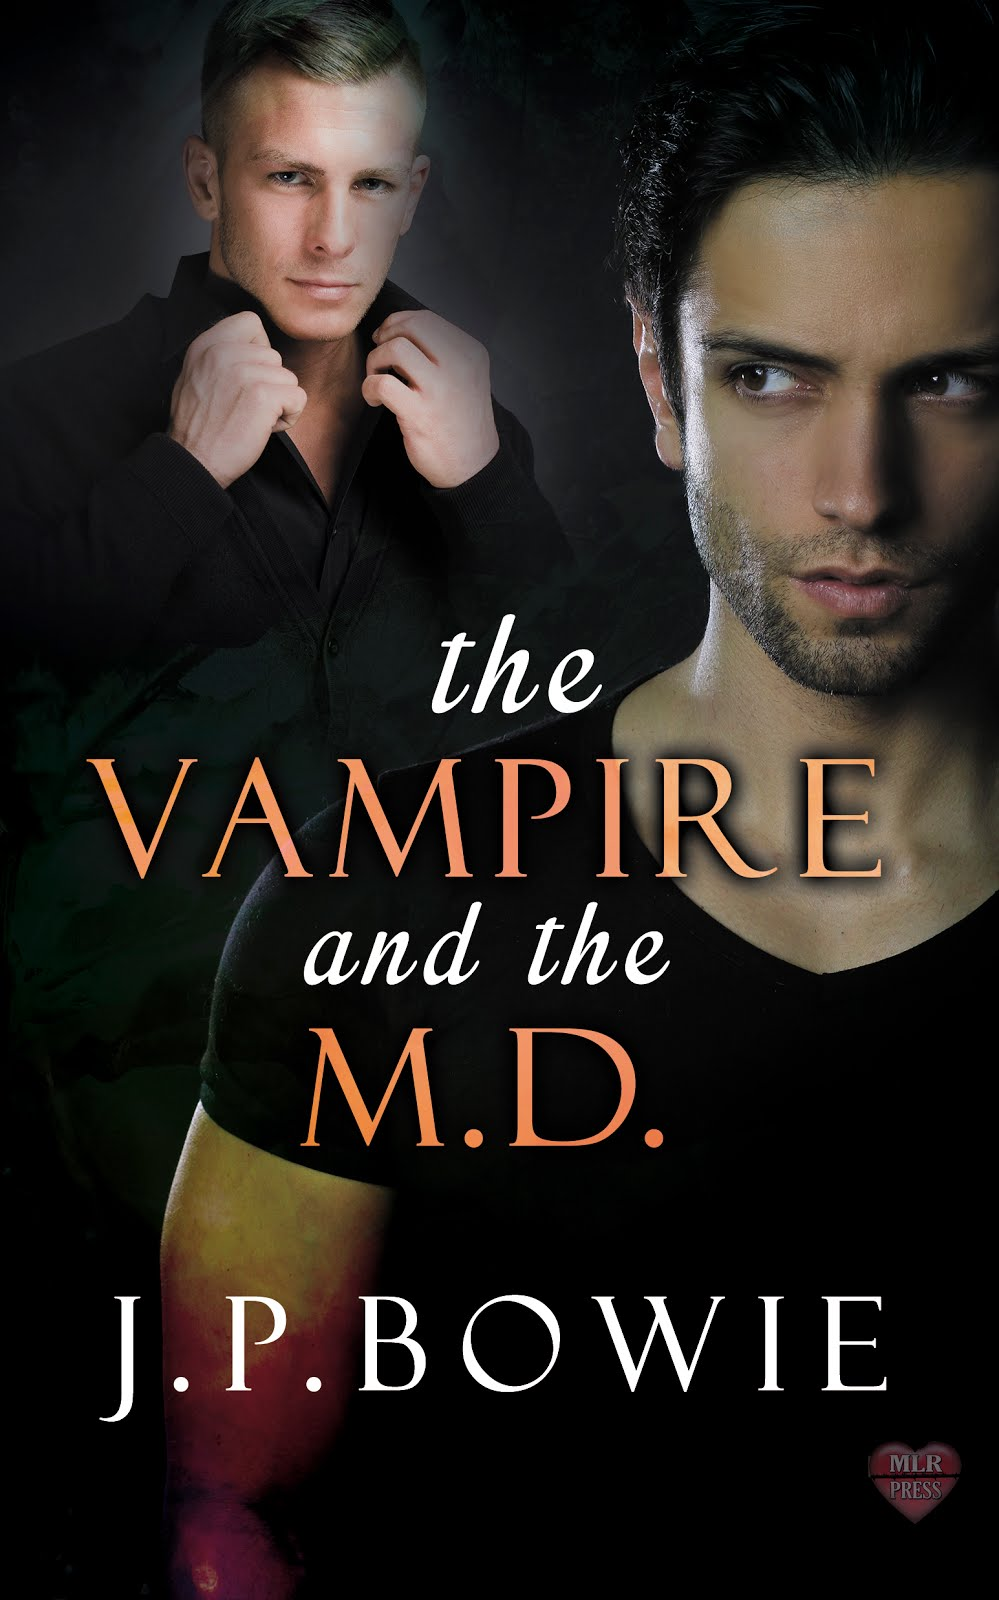 The Vampire and the M.D.